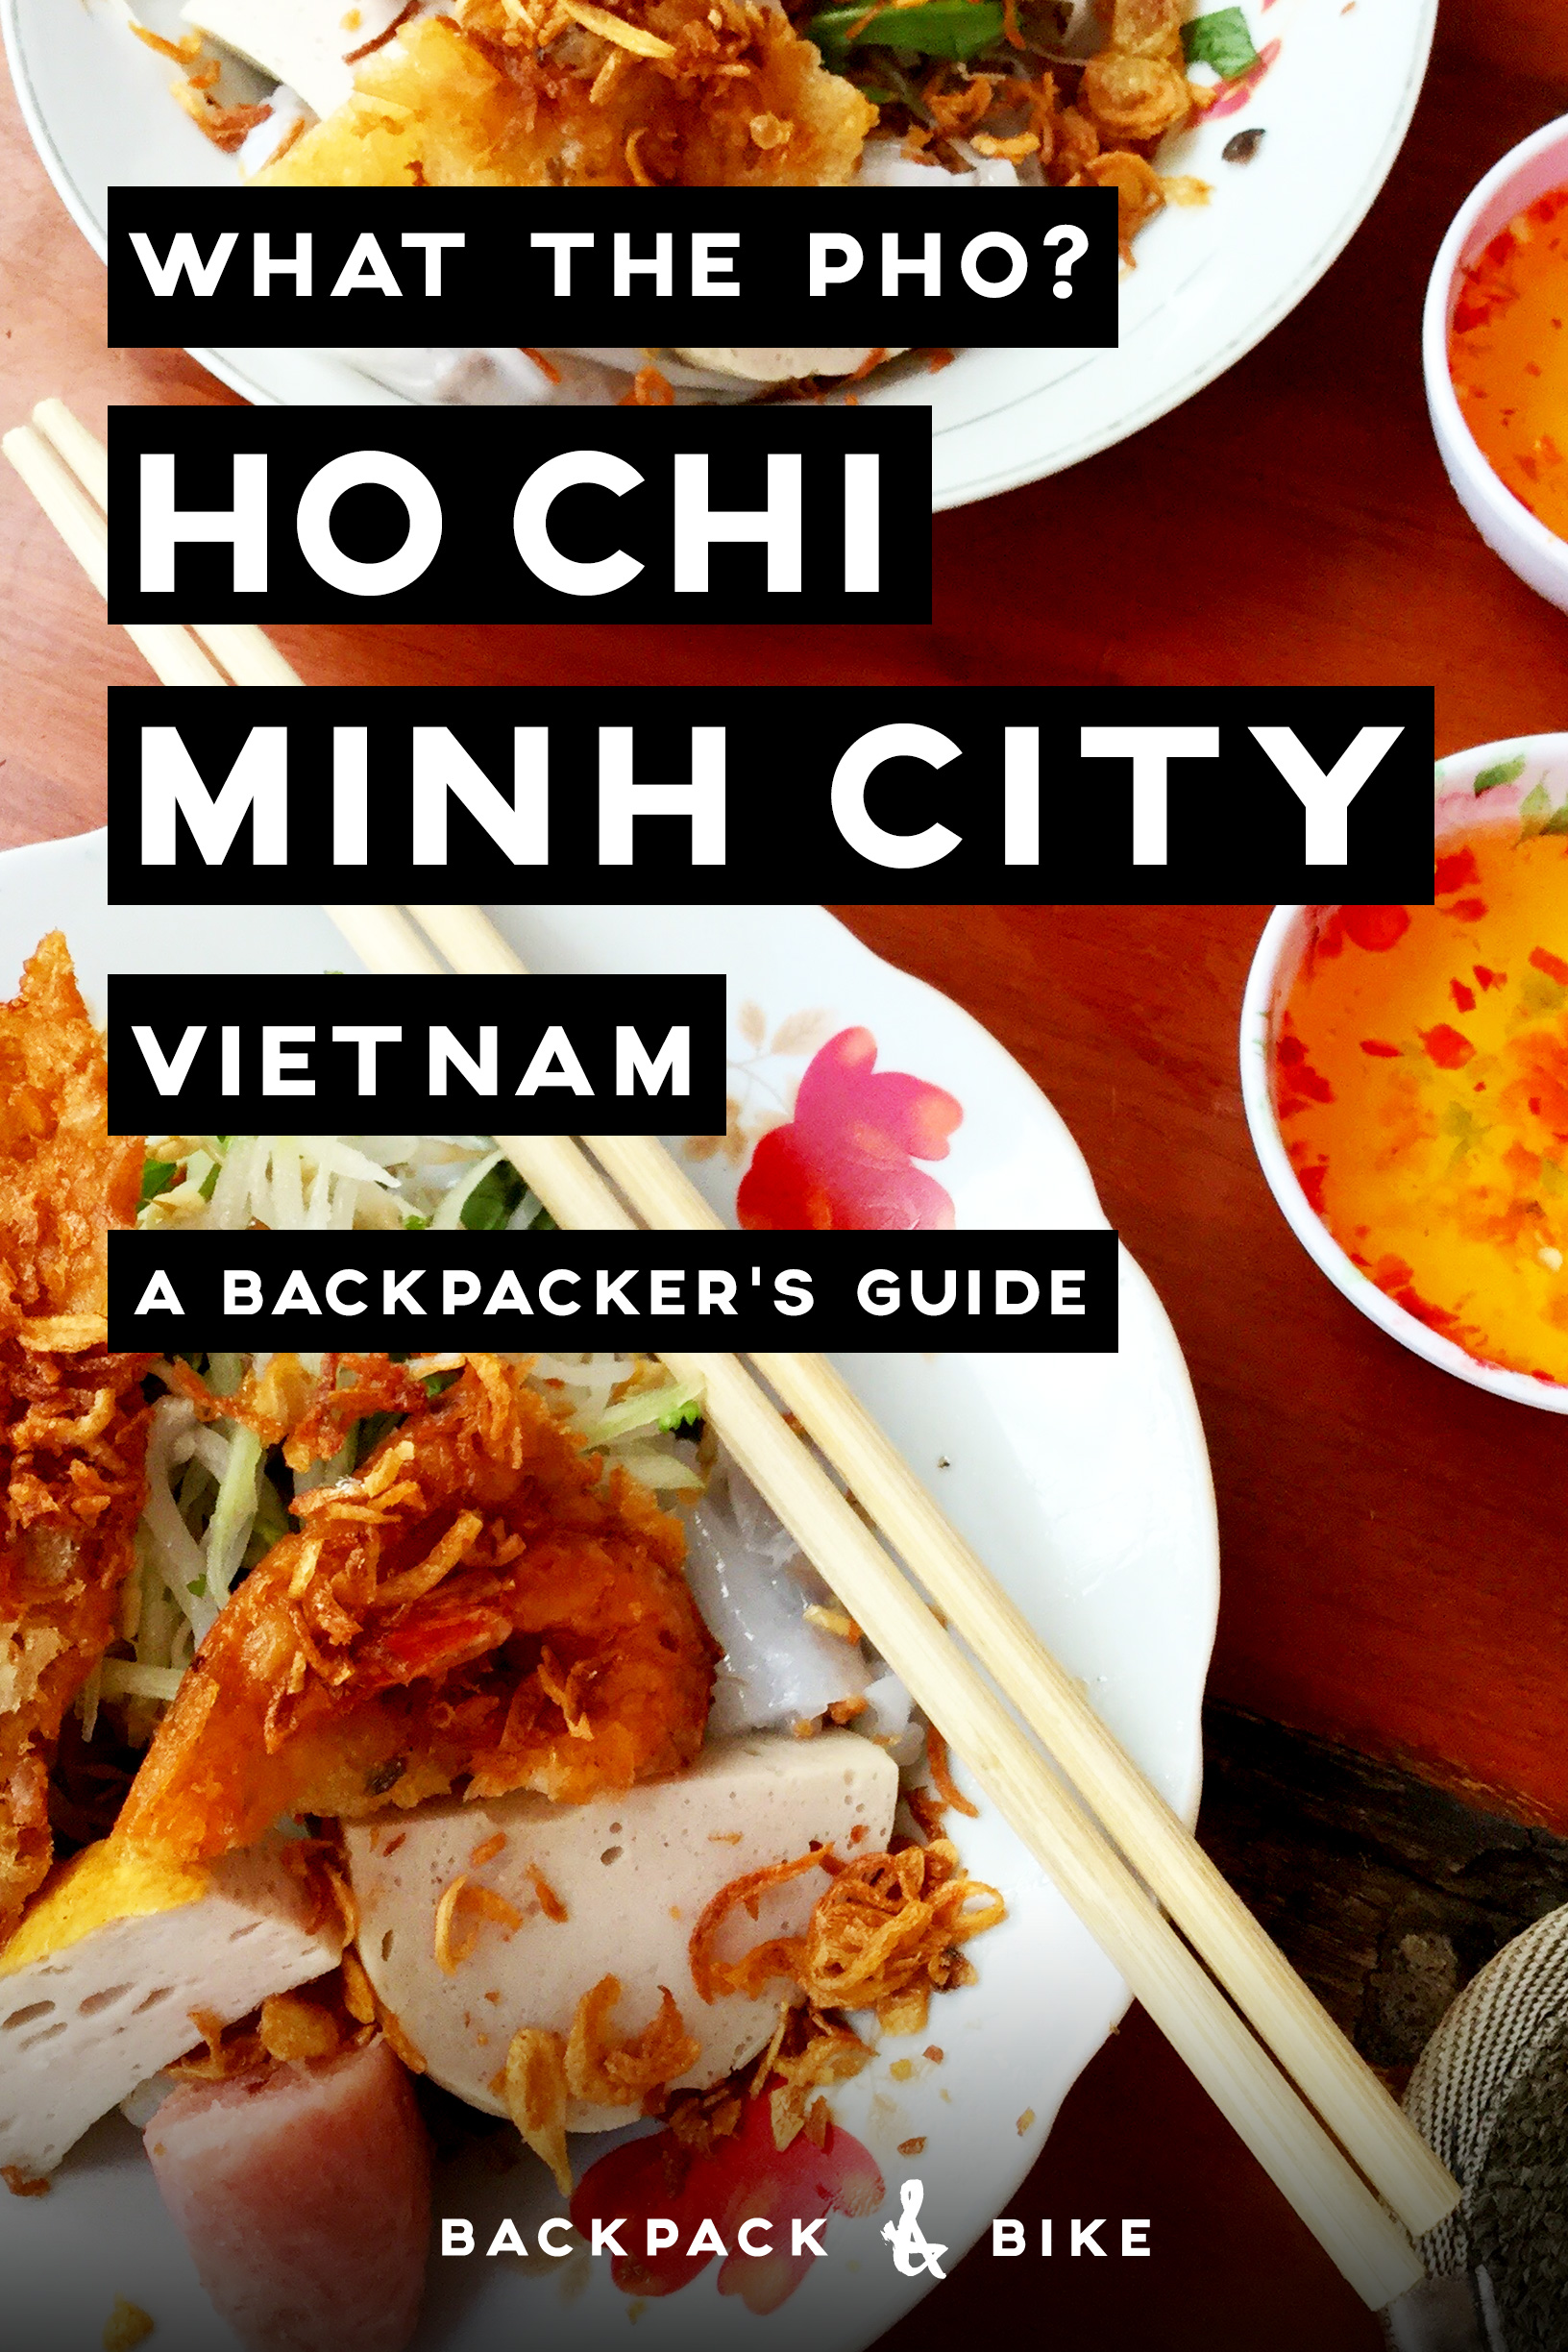 What The Pho? A guide to Ho Chi Minh City, Vietnam - Backpack & Bike